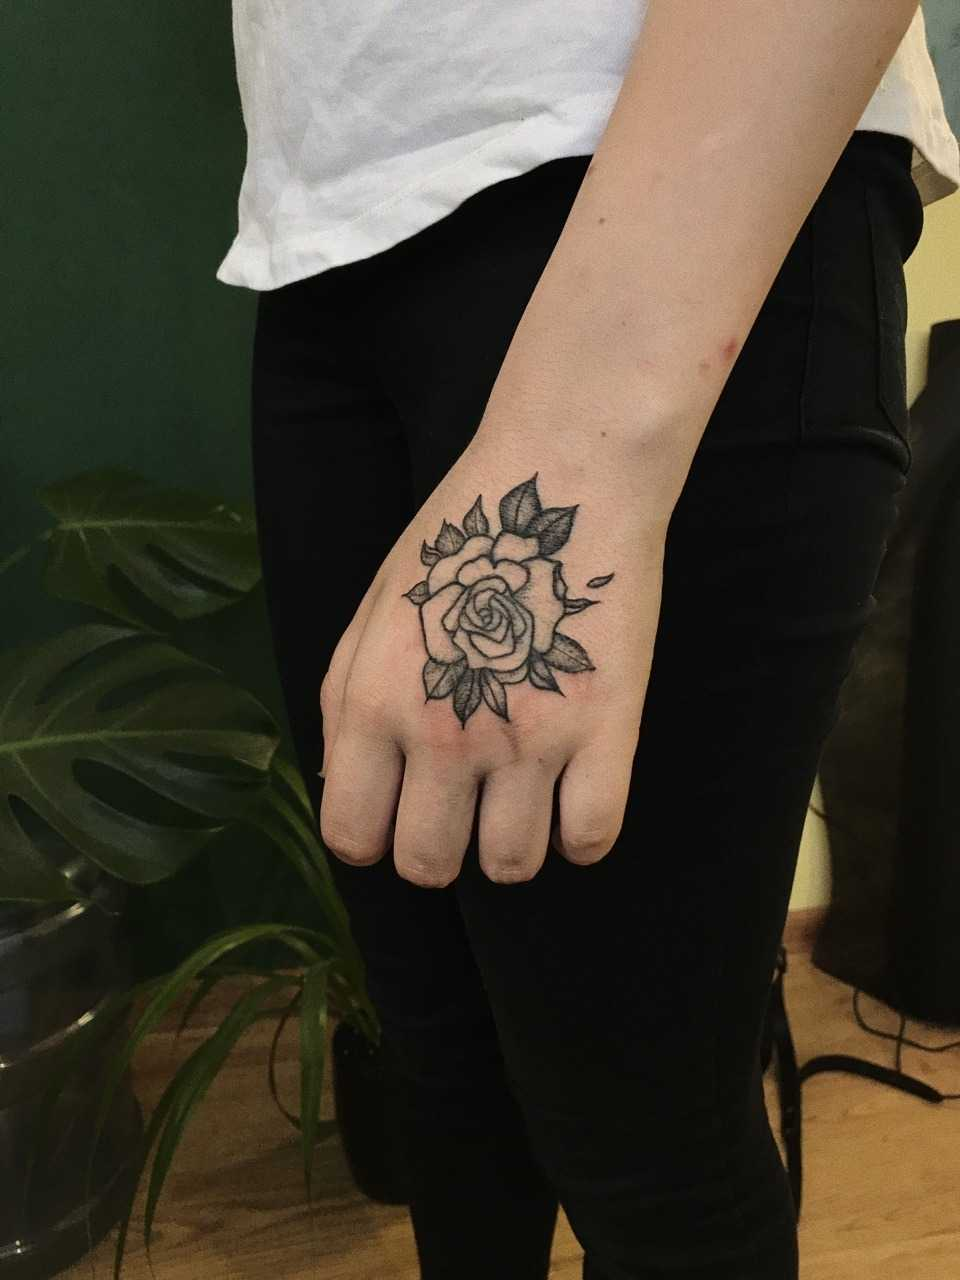 Simple rose tattoo on the left hand